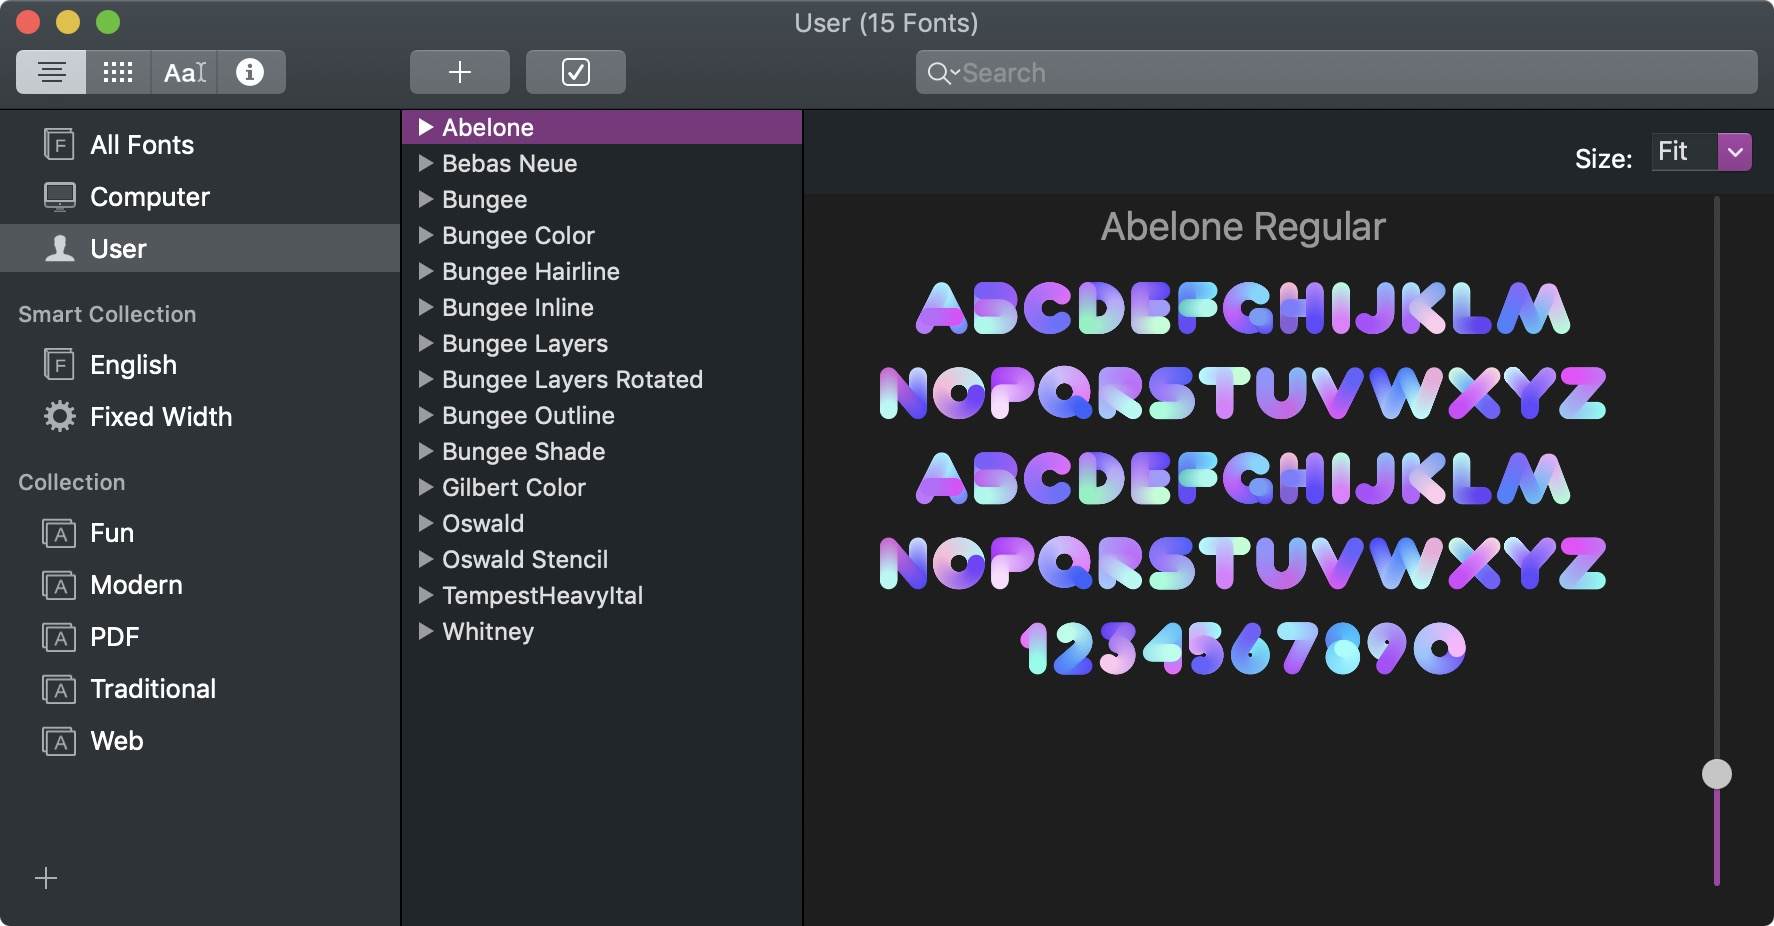 OpenType SVG fonts can integrate their own colors and textures.